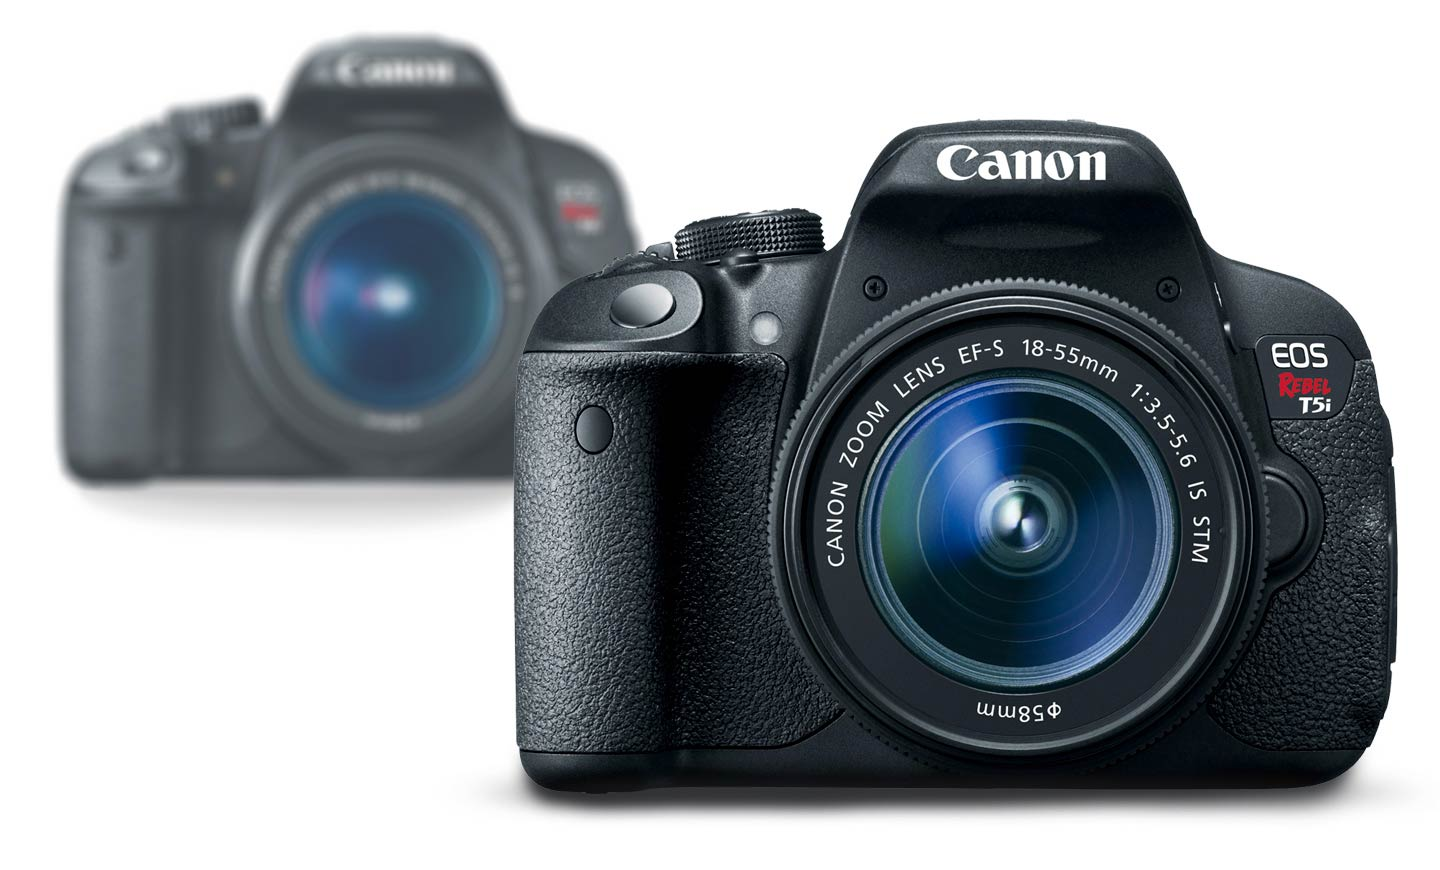 Canon T4i vs T5i: What's the difference?